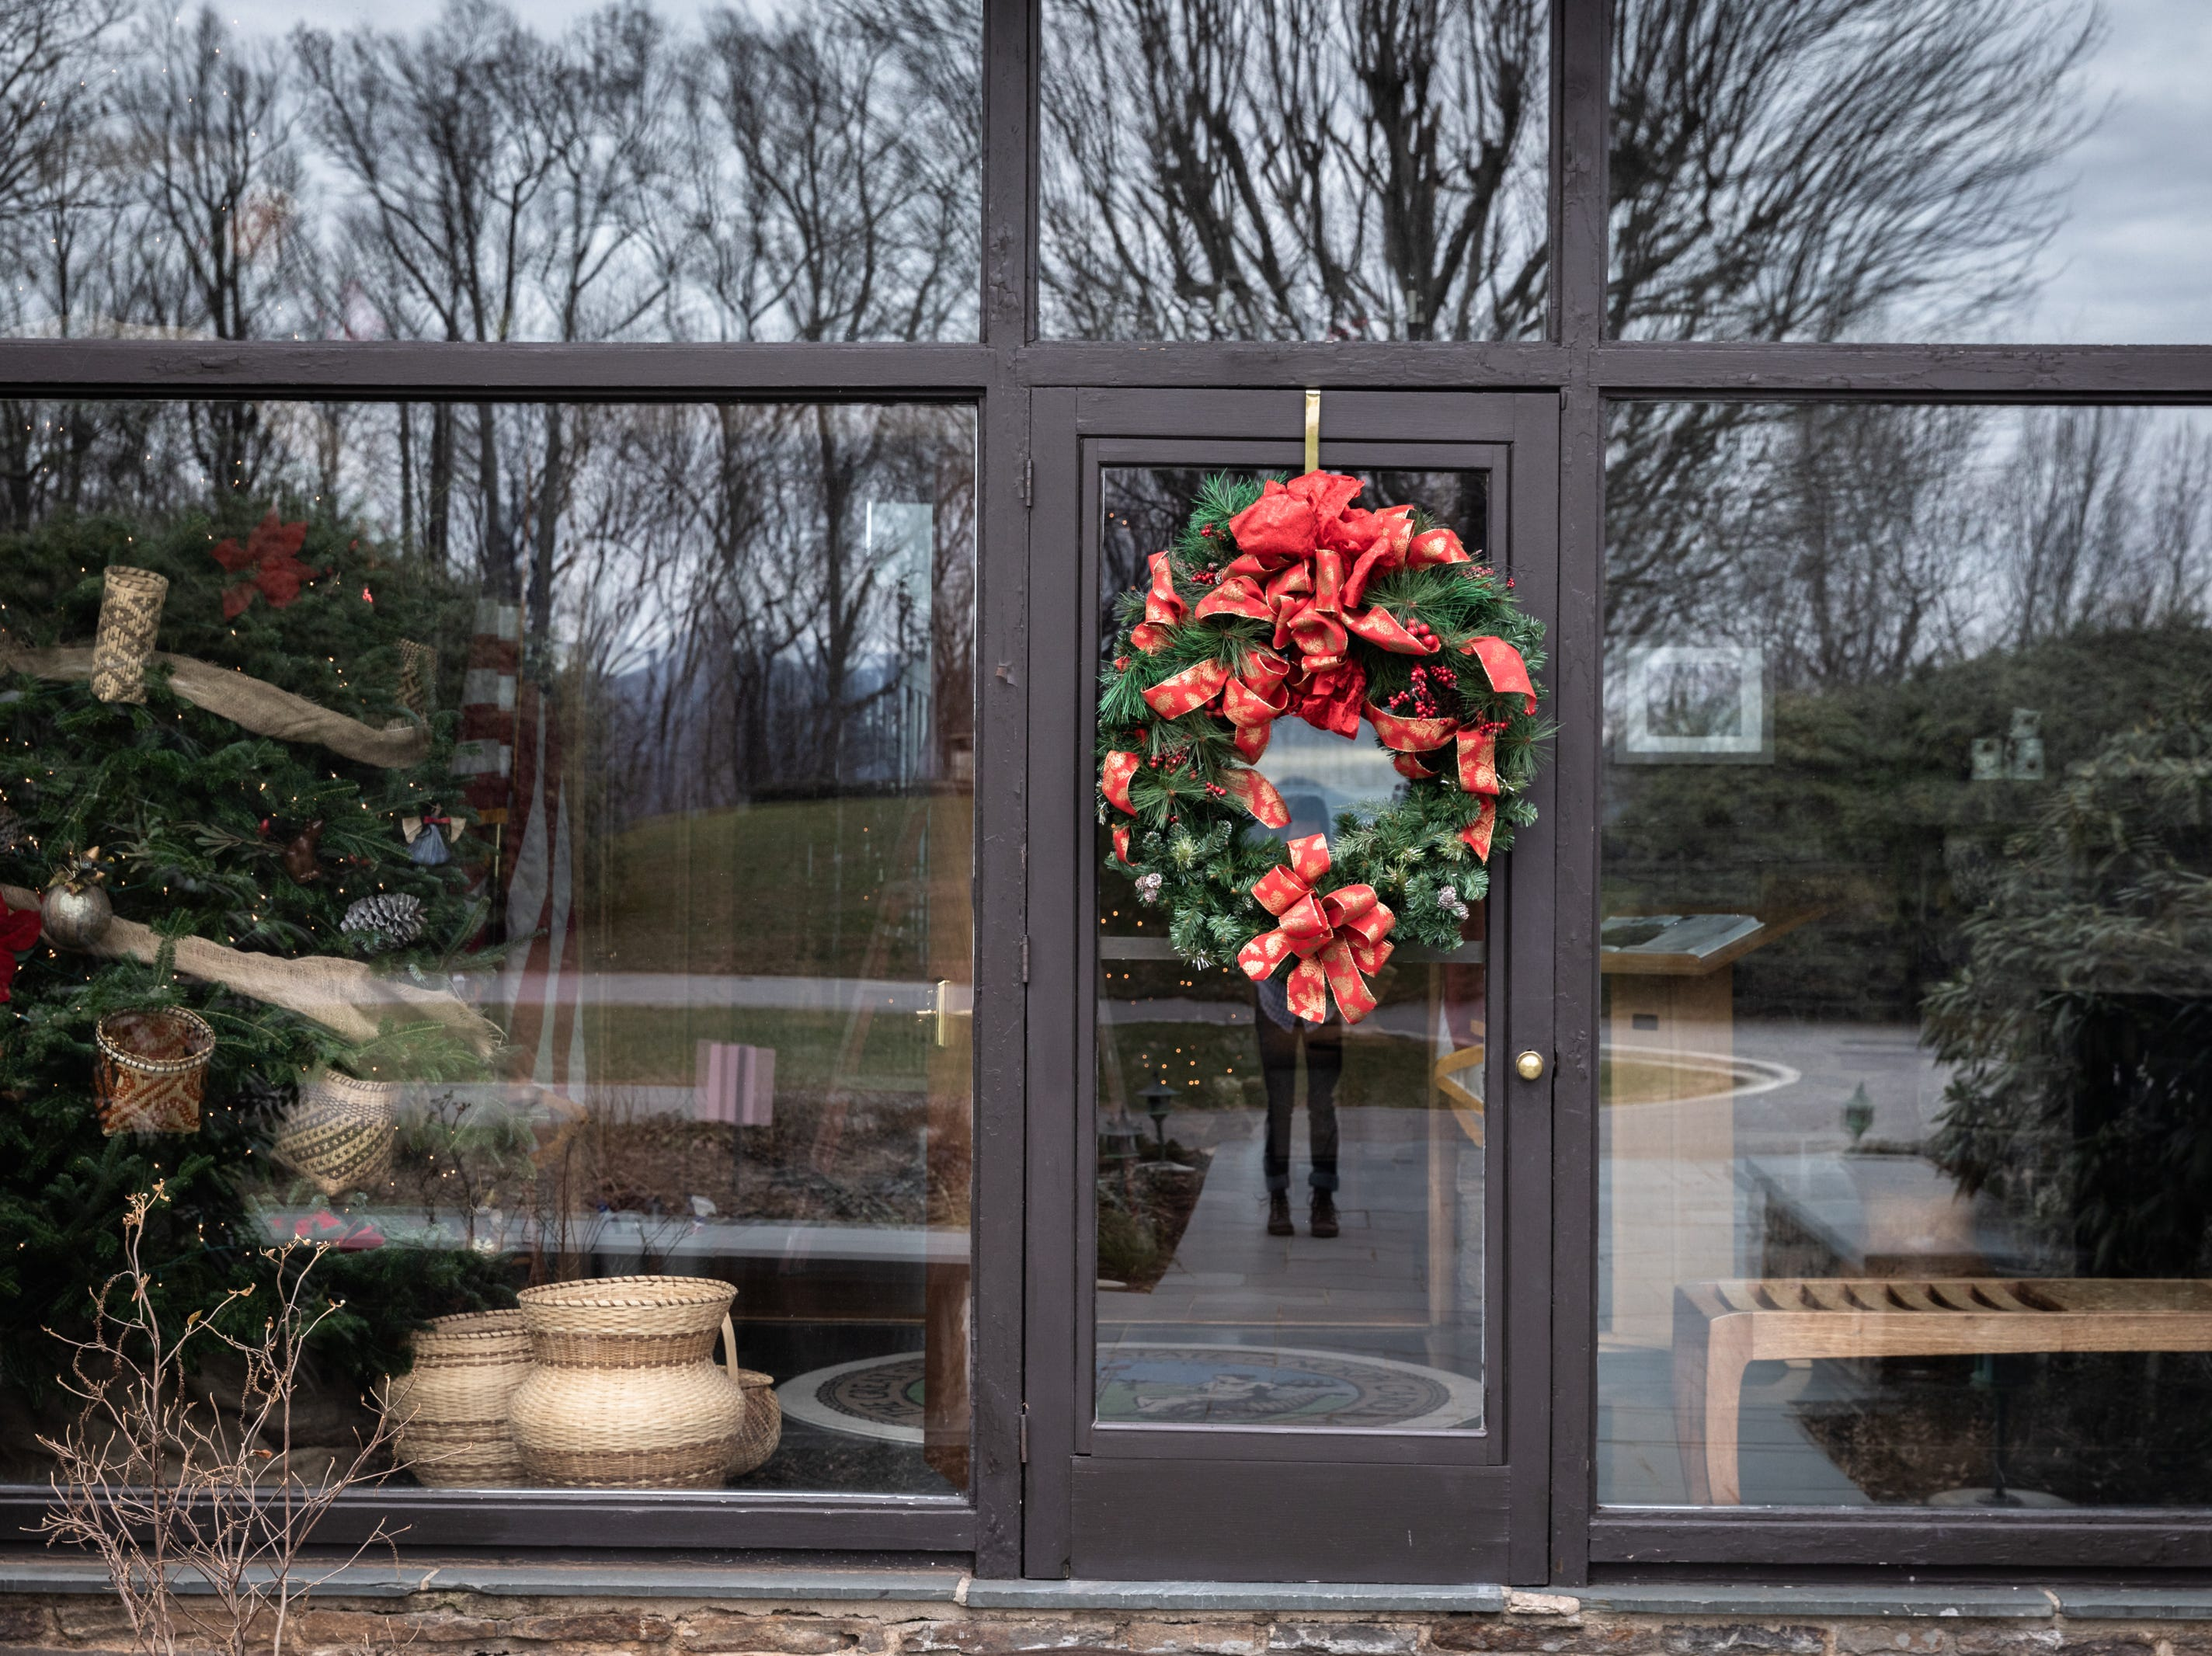 A holiday wreath adorns the front door of the Governor's Western Residence on Patton Mountain Road in Asheville.